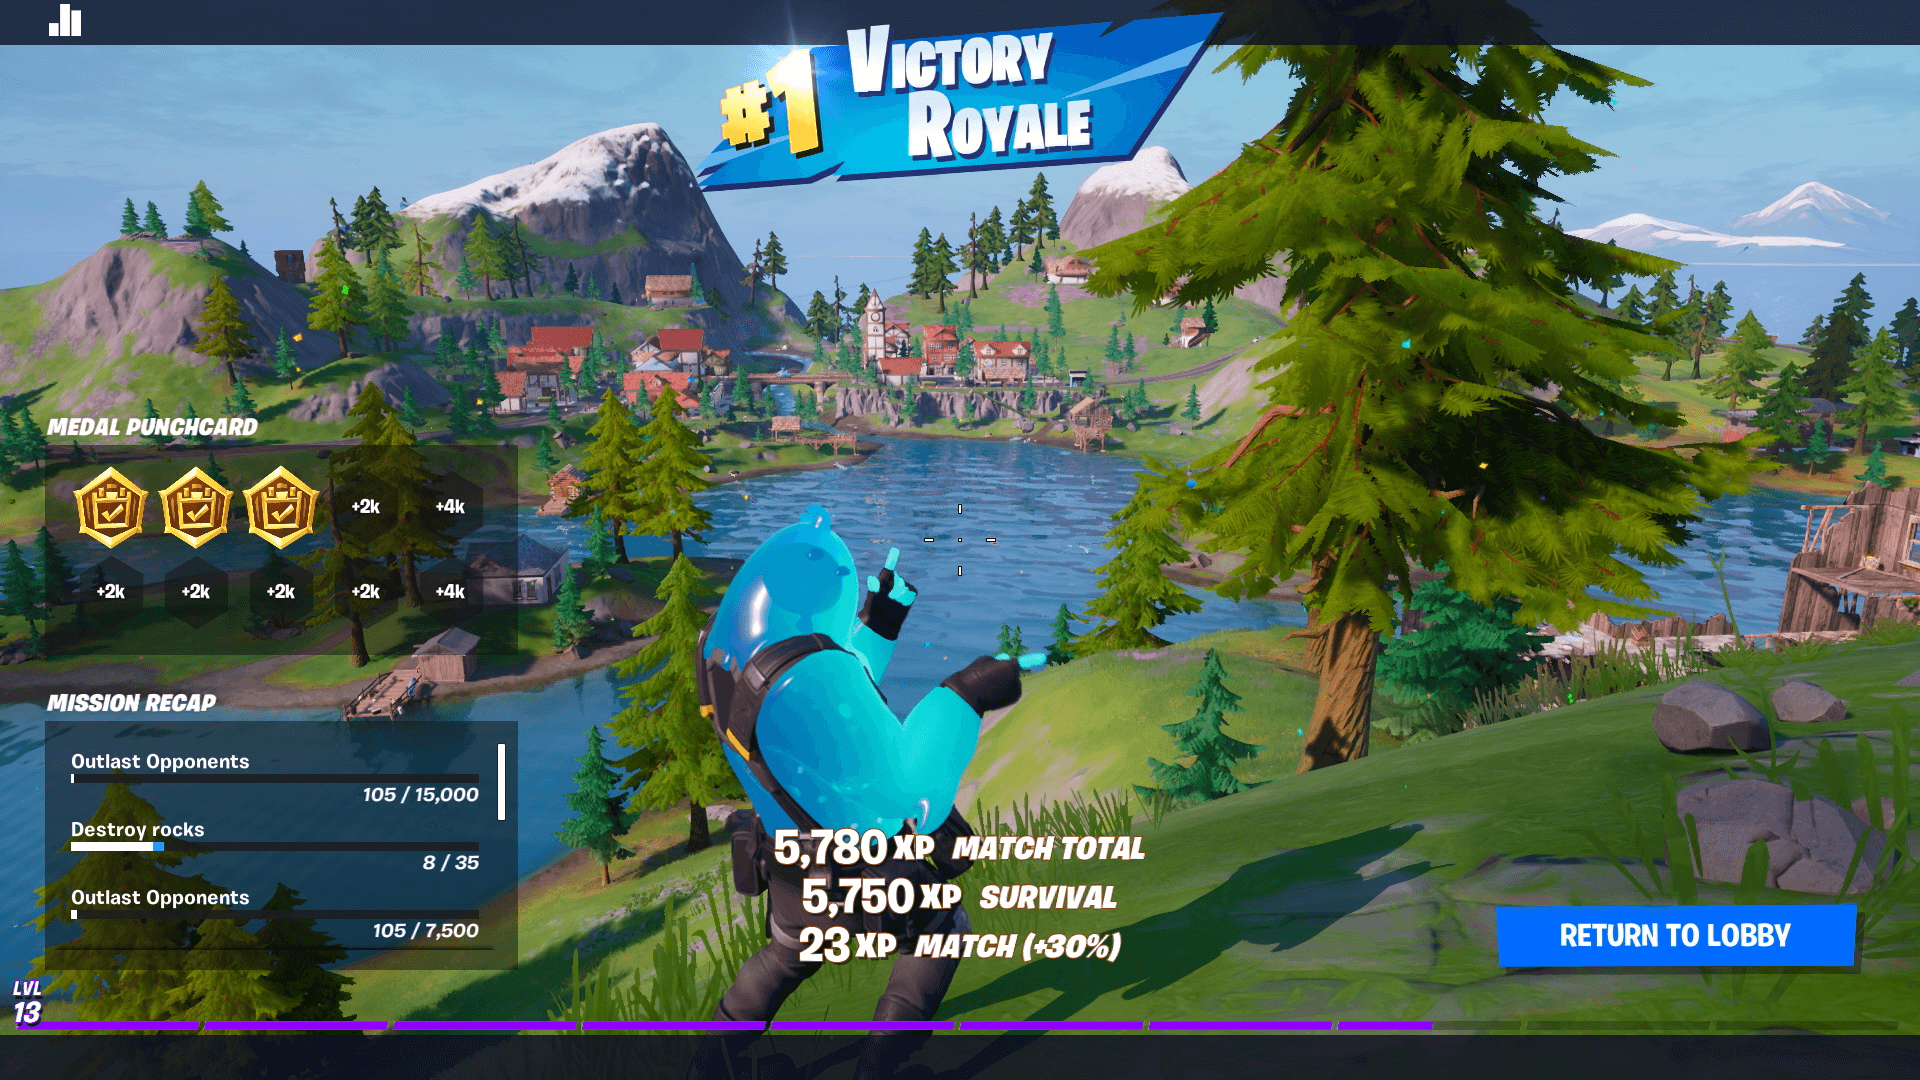 A look at the Victory Royale screen for winning a match in Fortnite.